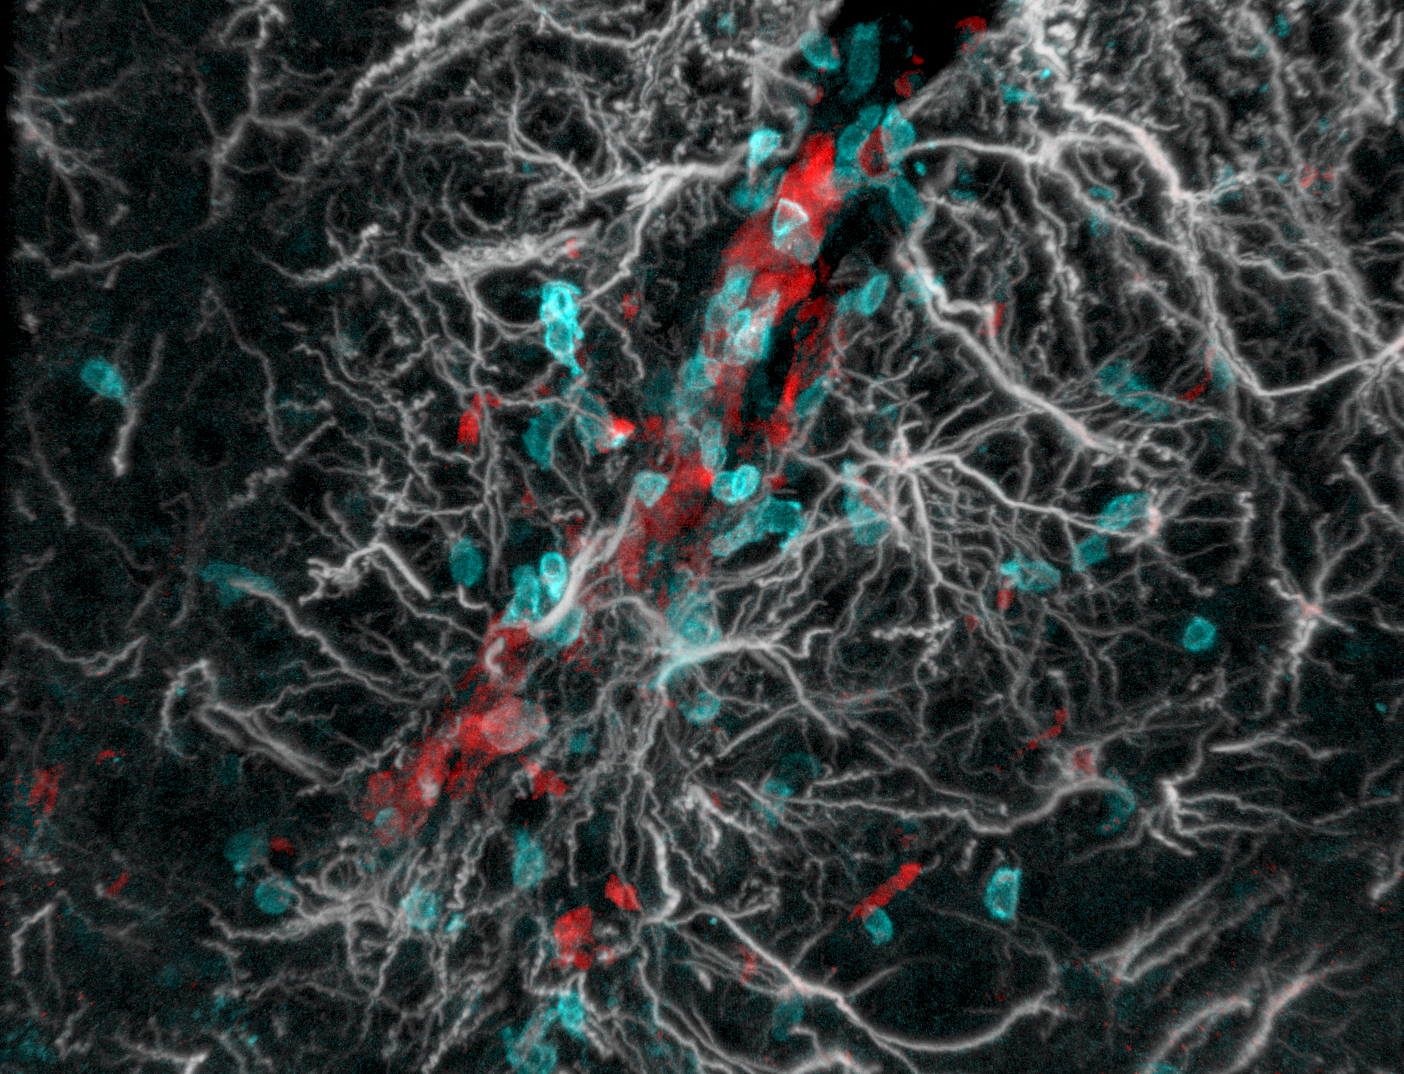 Astrocytes and T cells in EAE spinal cord